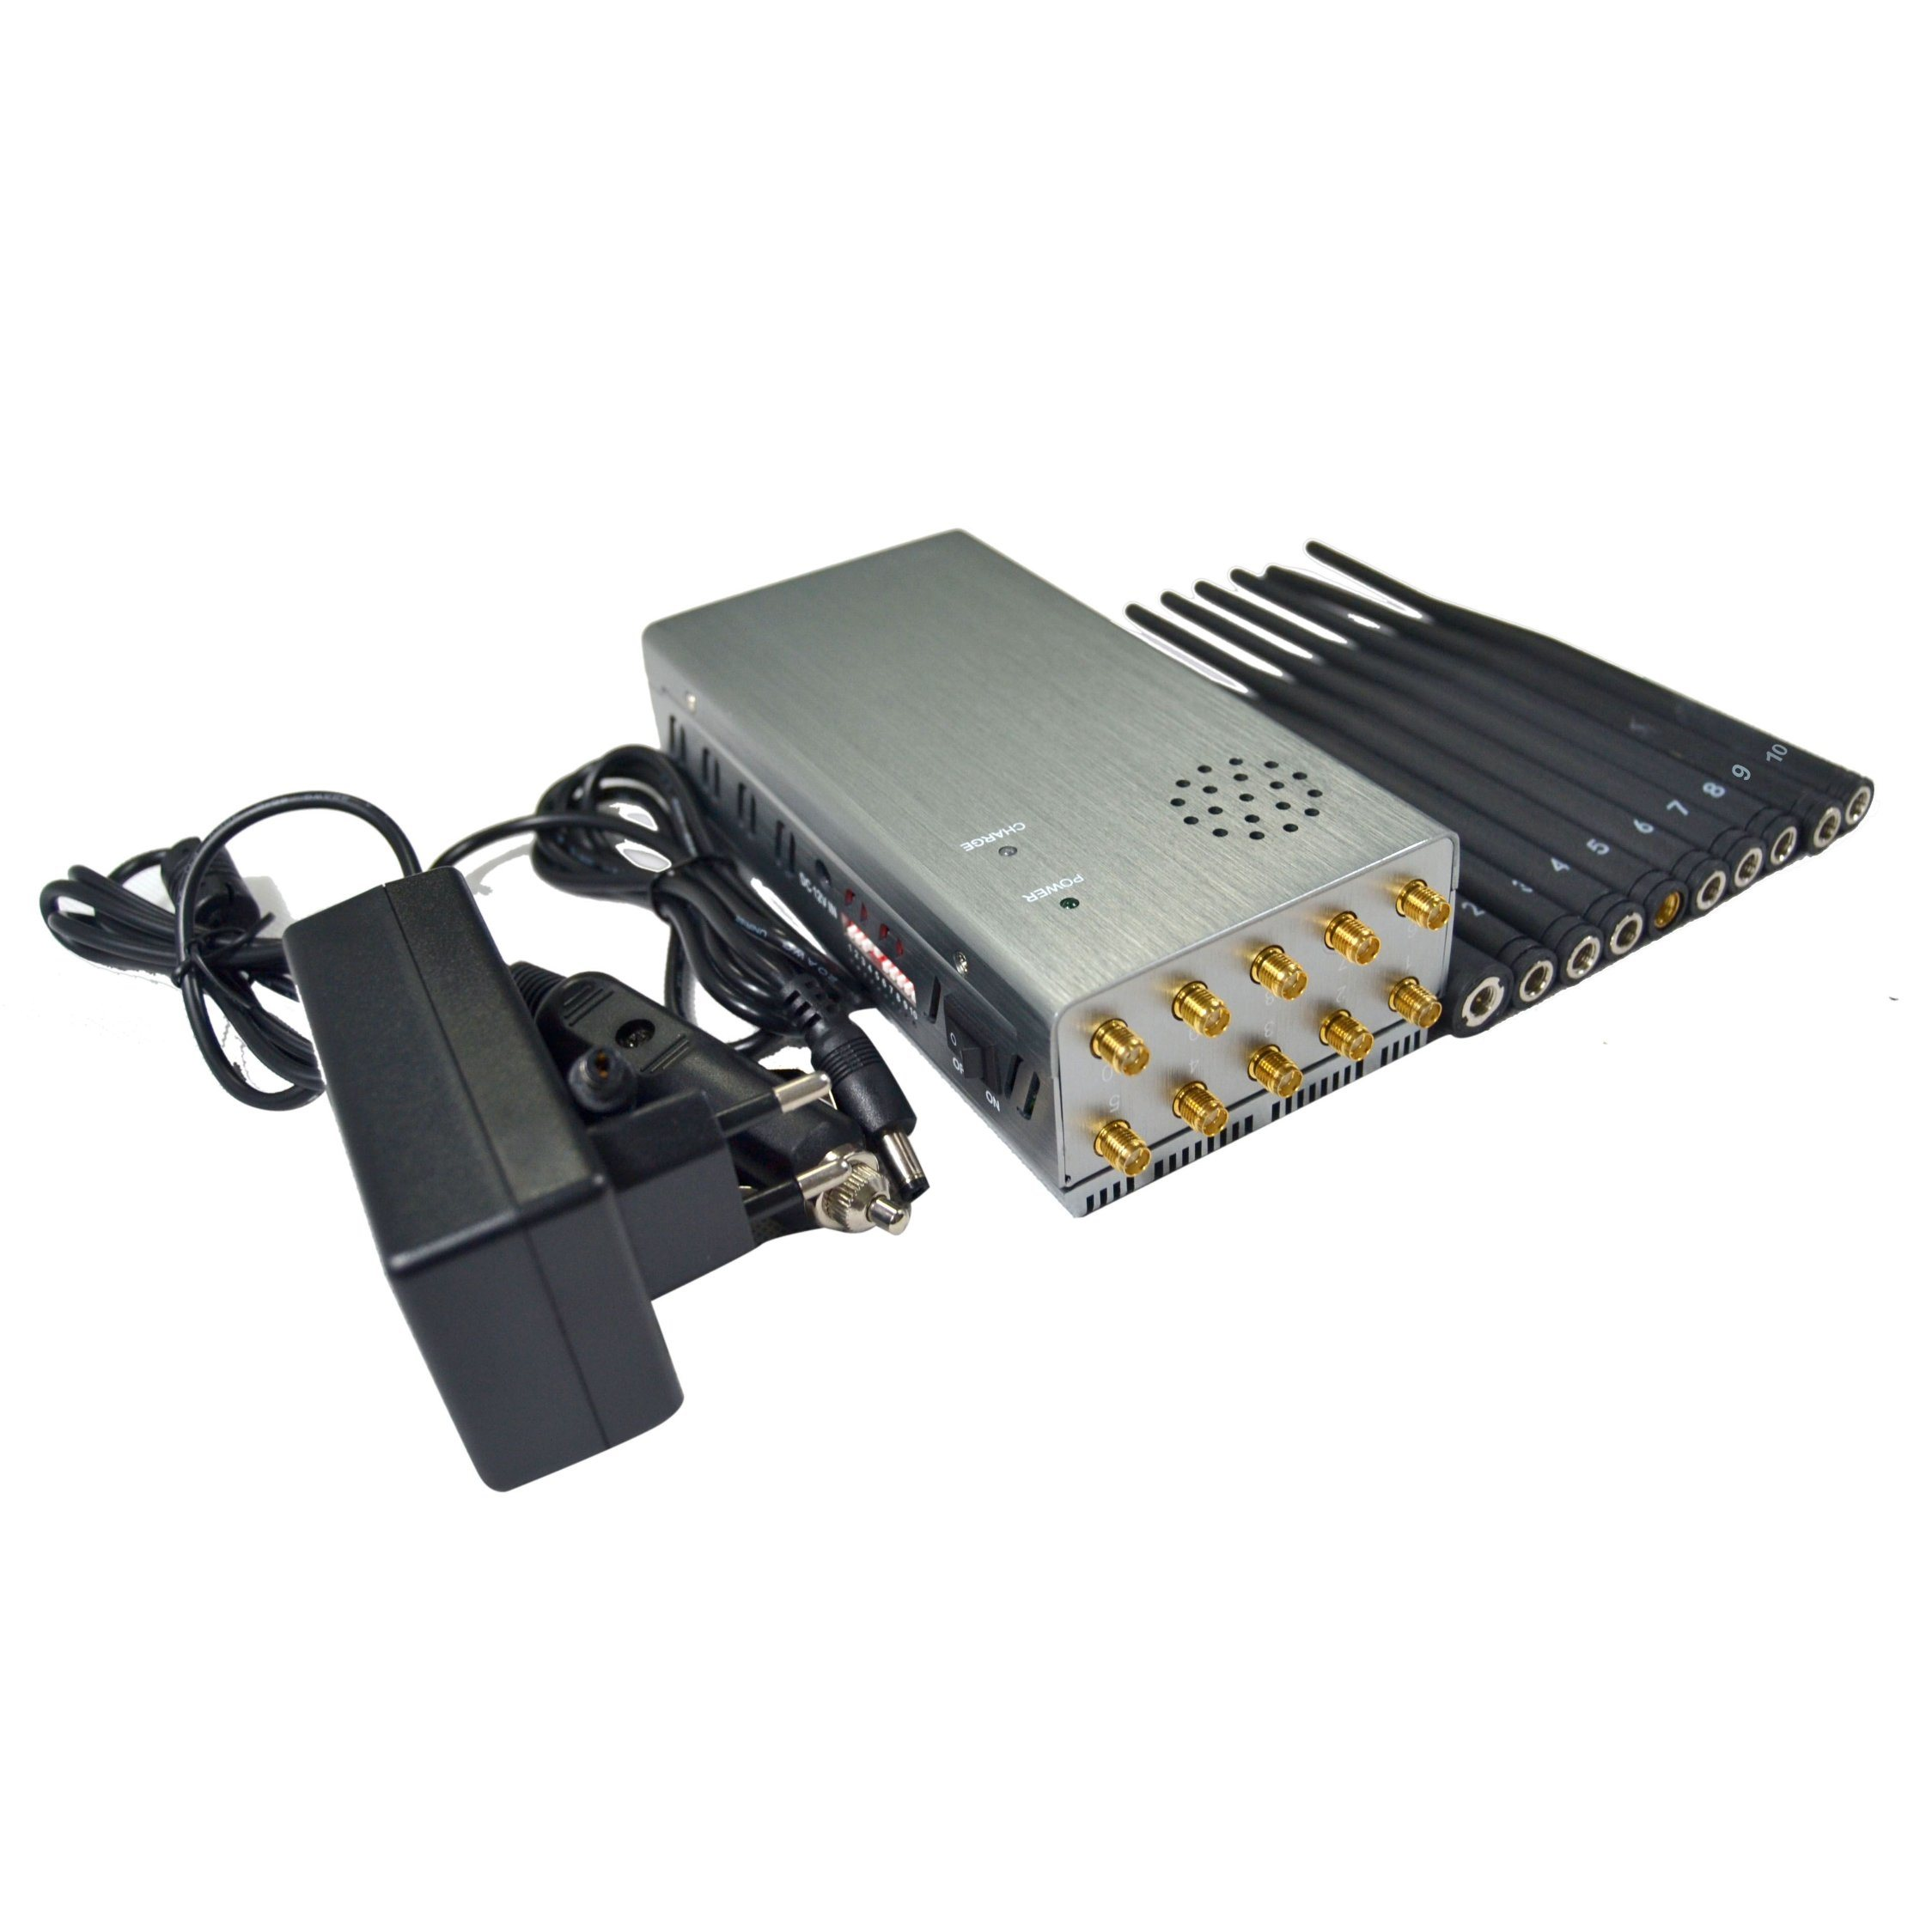 remote phone jammer build - China The King of Portable Jammers with 8000mA and 10 Antennas Including 2g 3G 4G 5g GPS 433MHz315MHz868MHz WiFi - China 8000mA Battery Jammer, Large Volume Power Signal Blocker